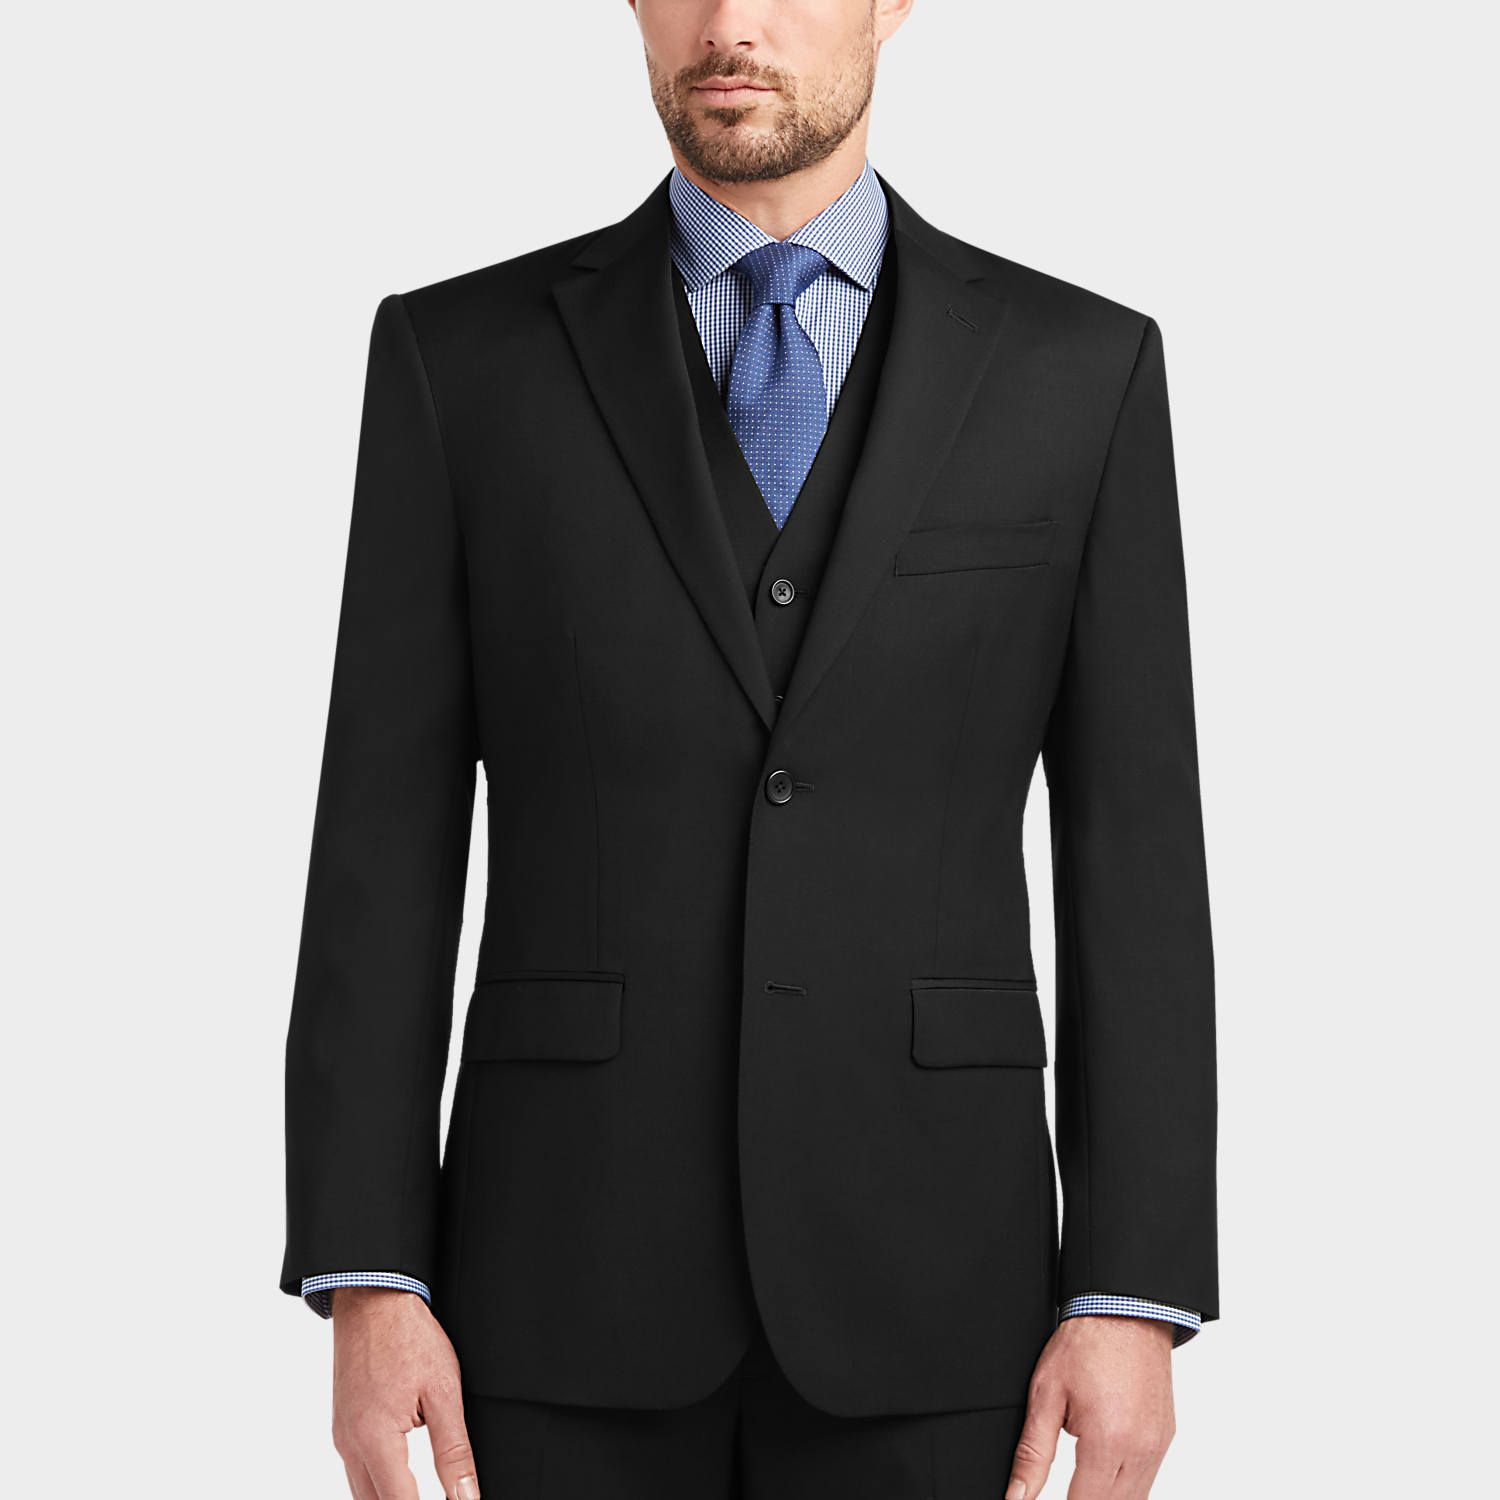 Buy a Awearness Kenneth Cole Black Slim Fit Vest Suit and other ...